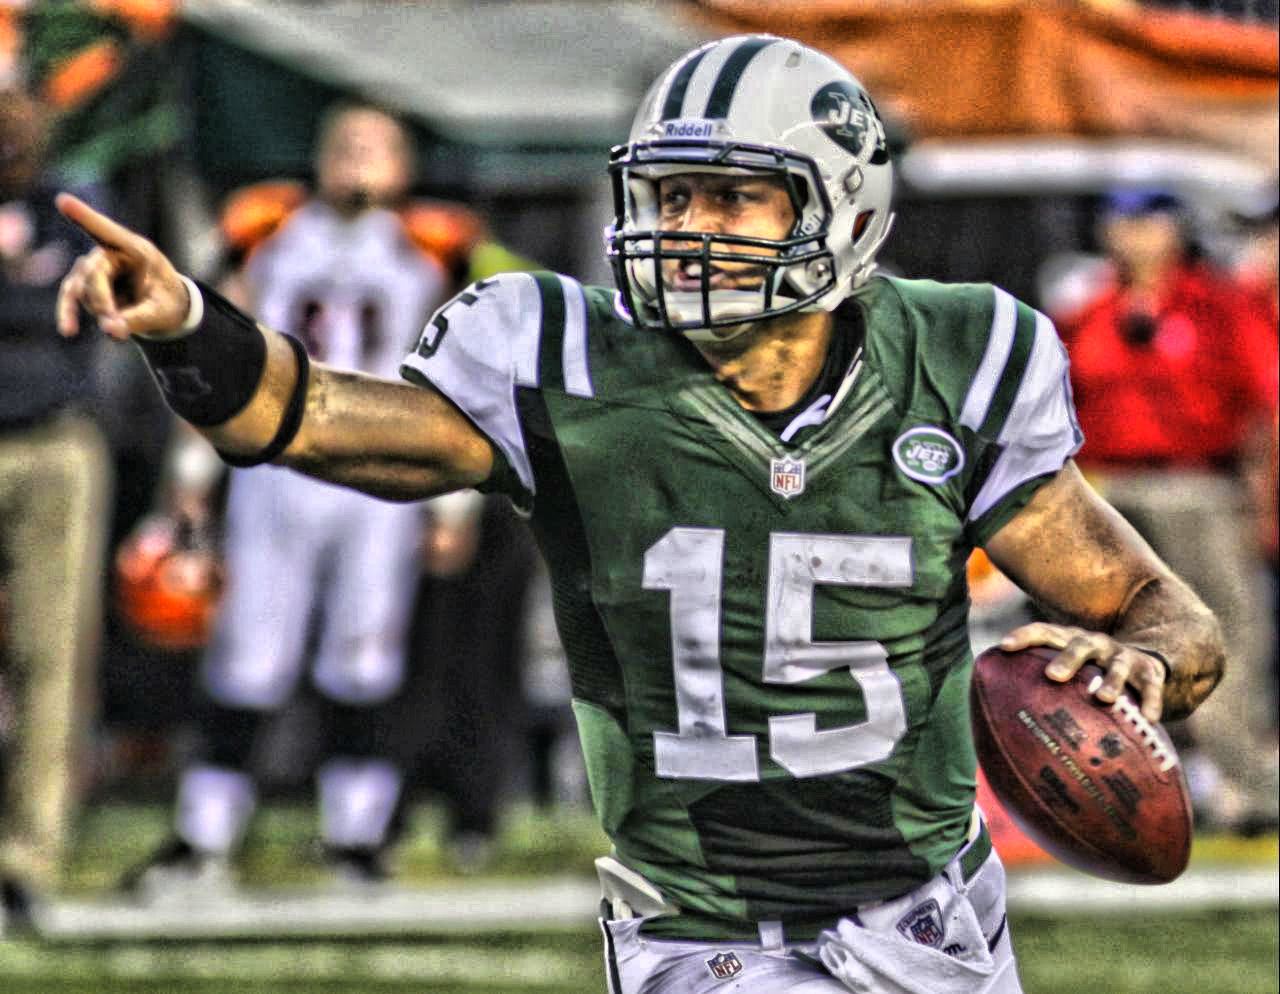 #Pointing Tim Tebow #Jets